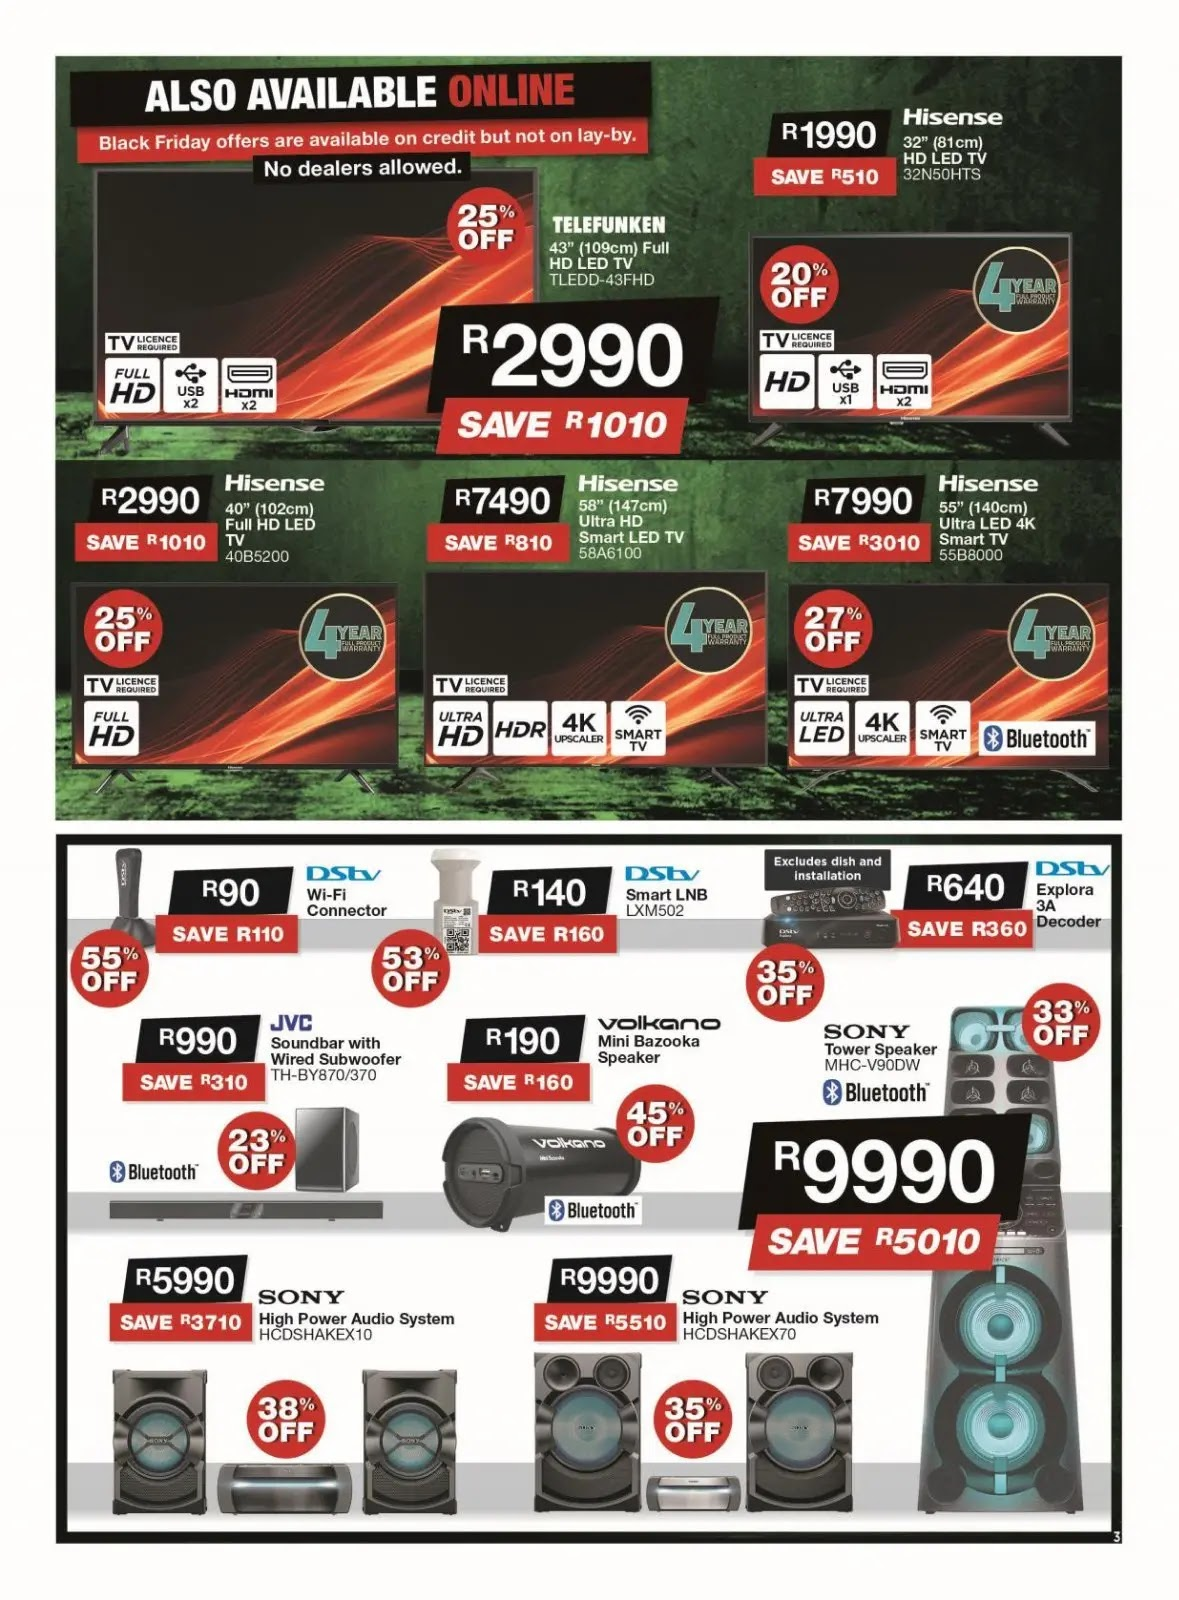 House & Home Black Friday Deals Page 3